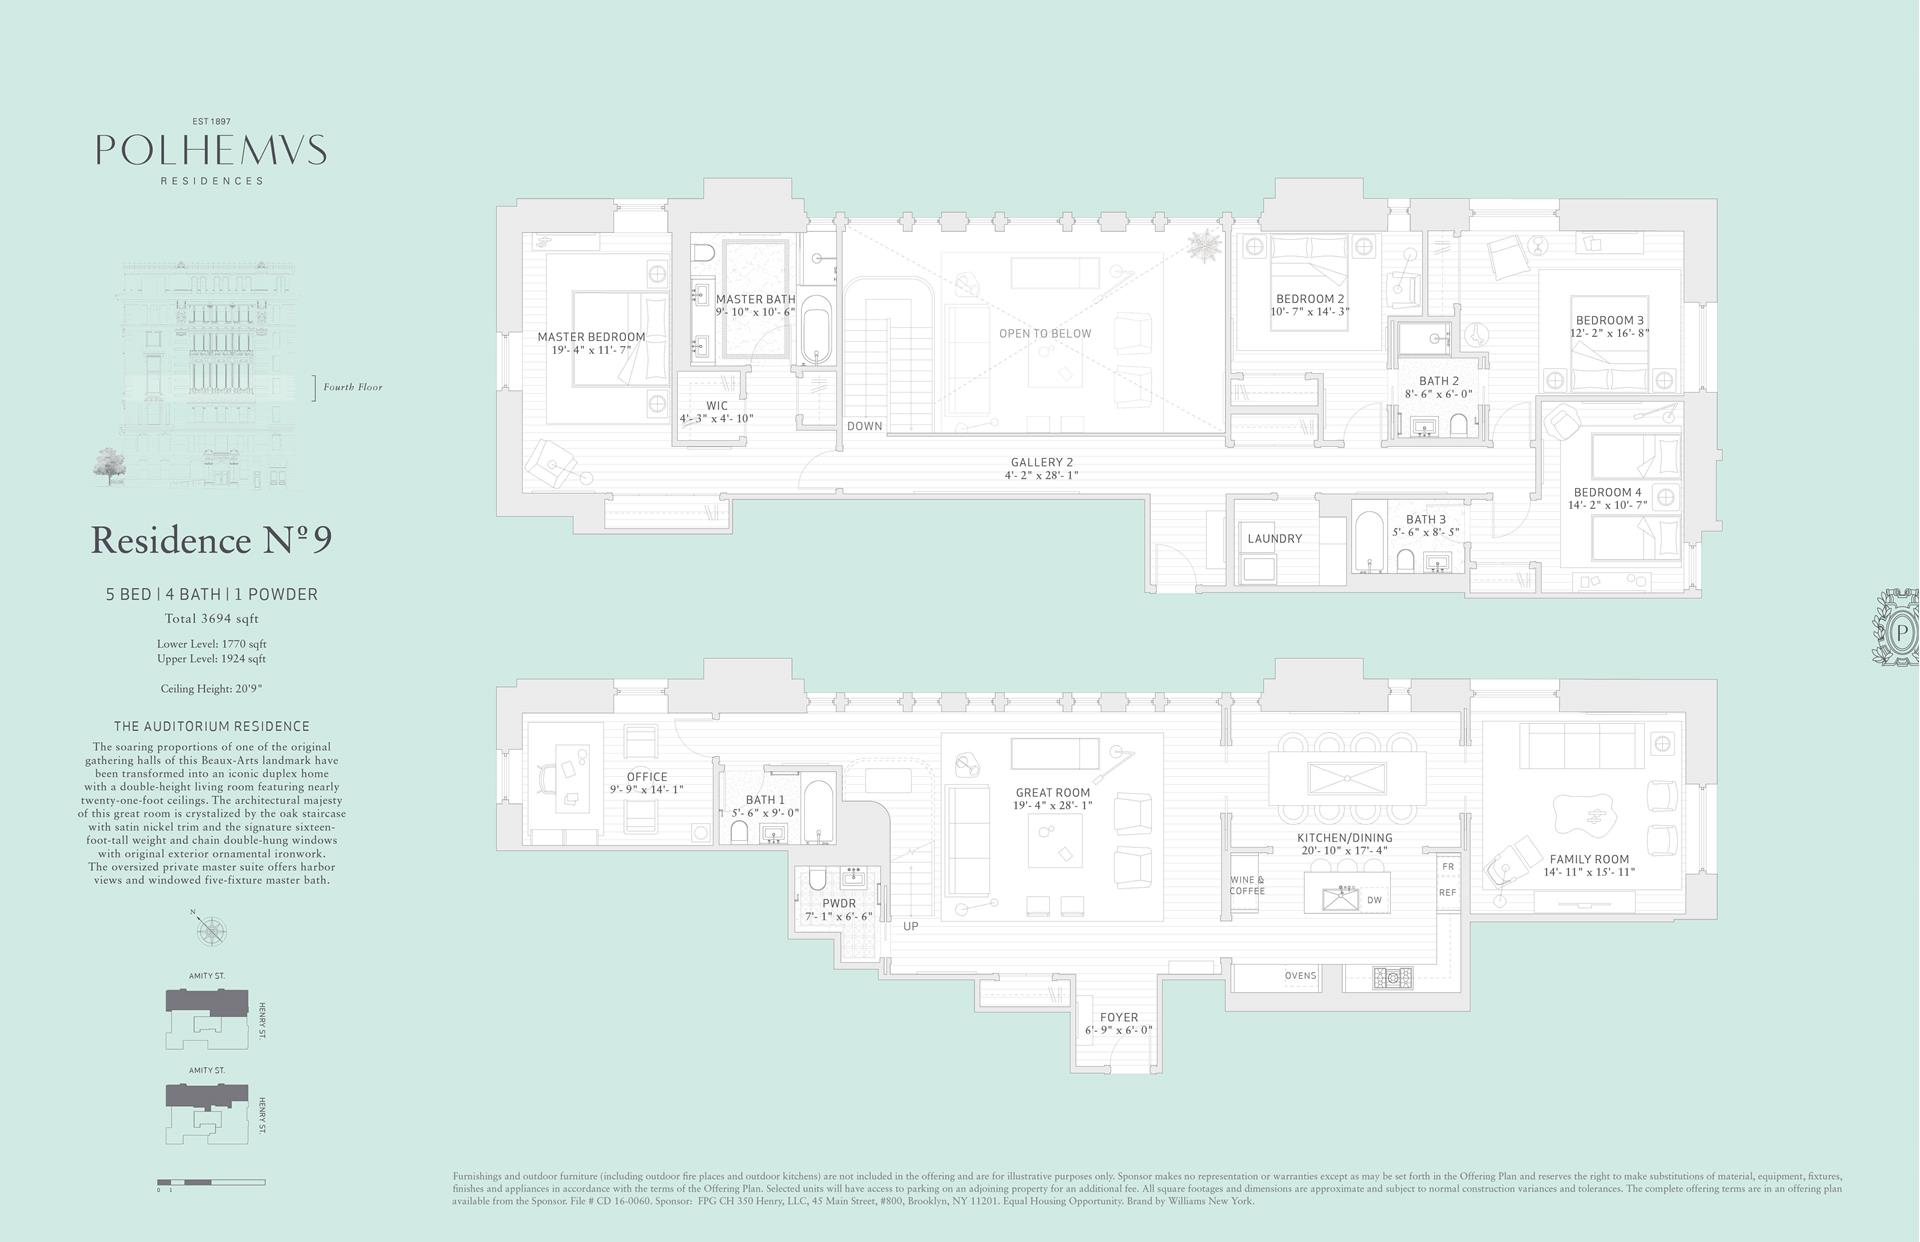 Floor plan of Polhemus, 100 Amity St, RESIDENCE9 - Cobble Hill, New York